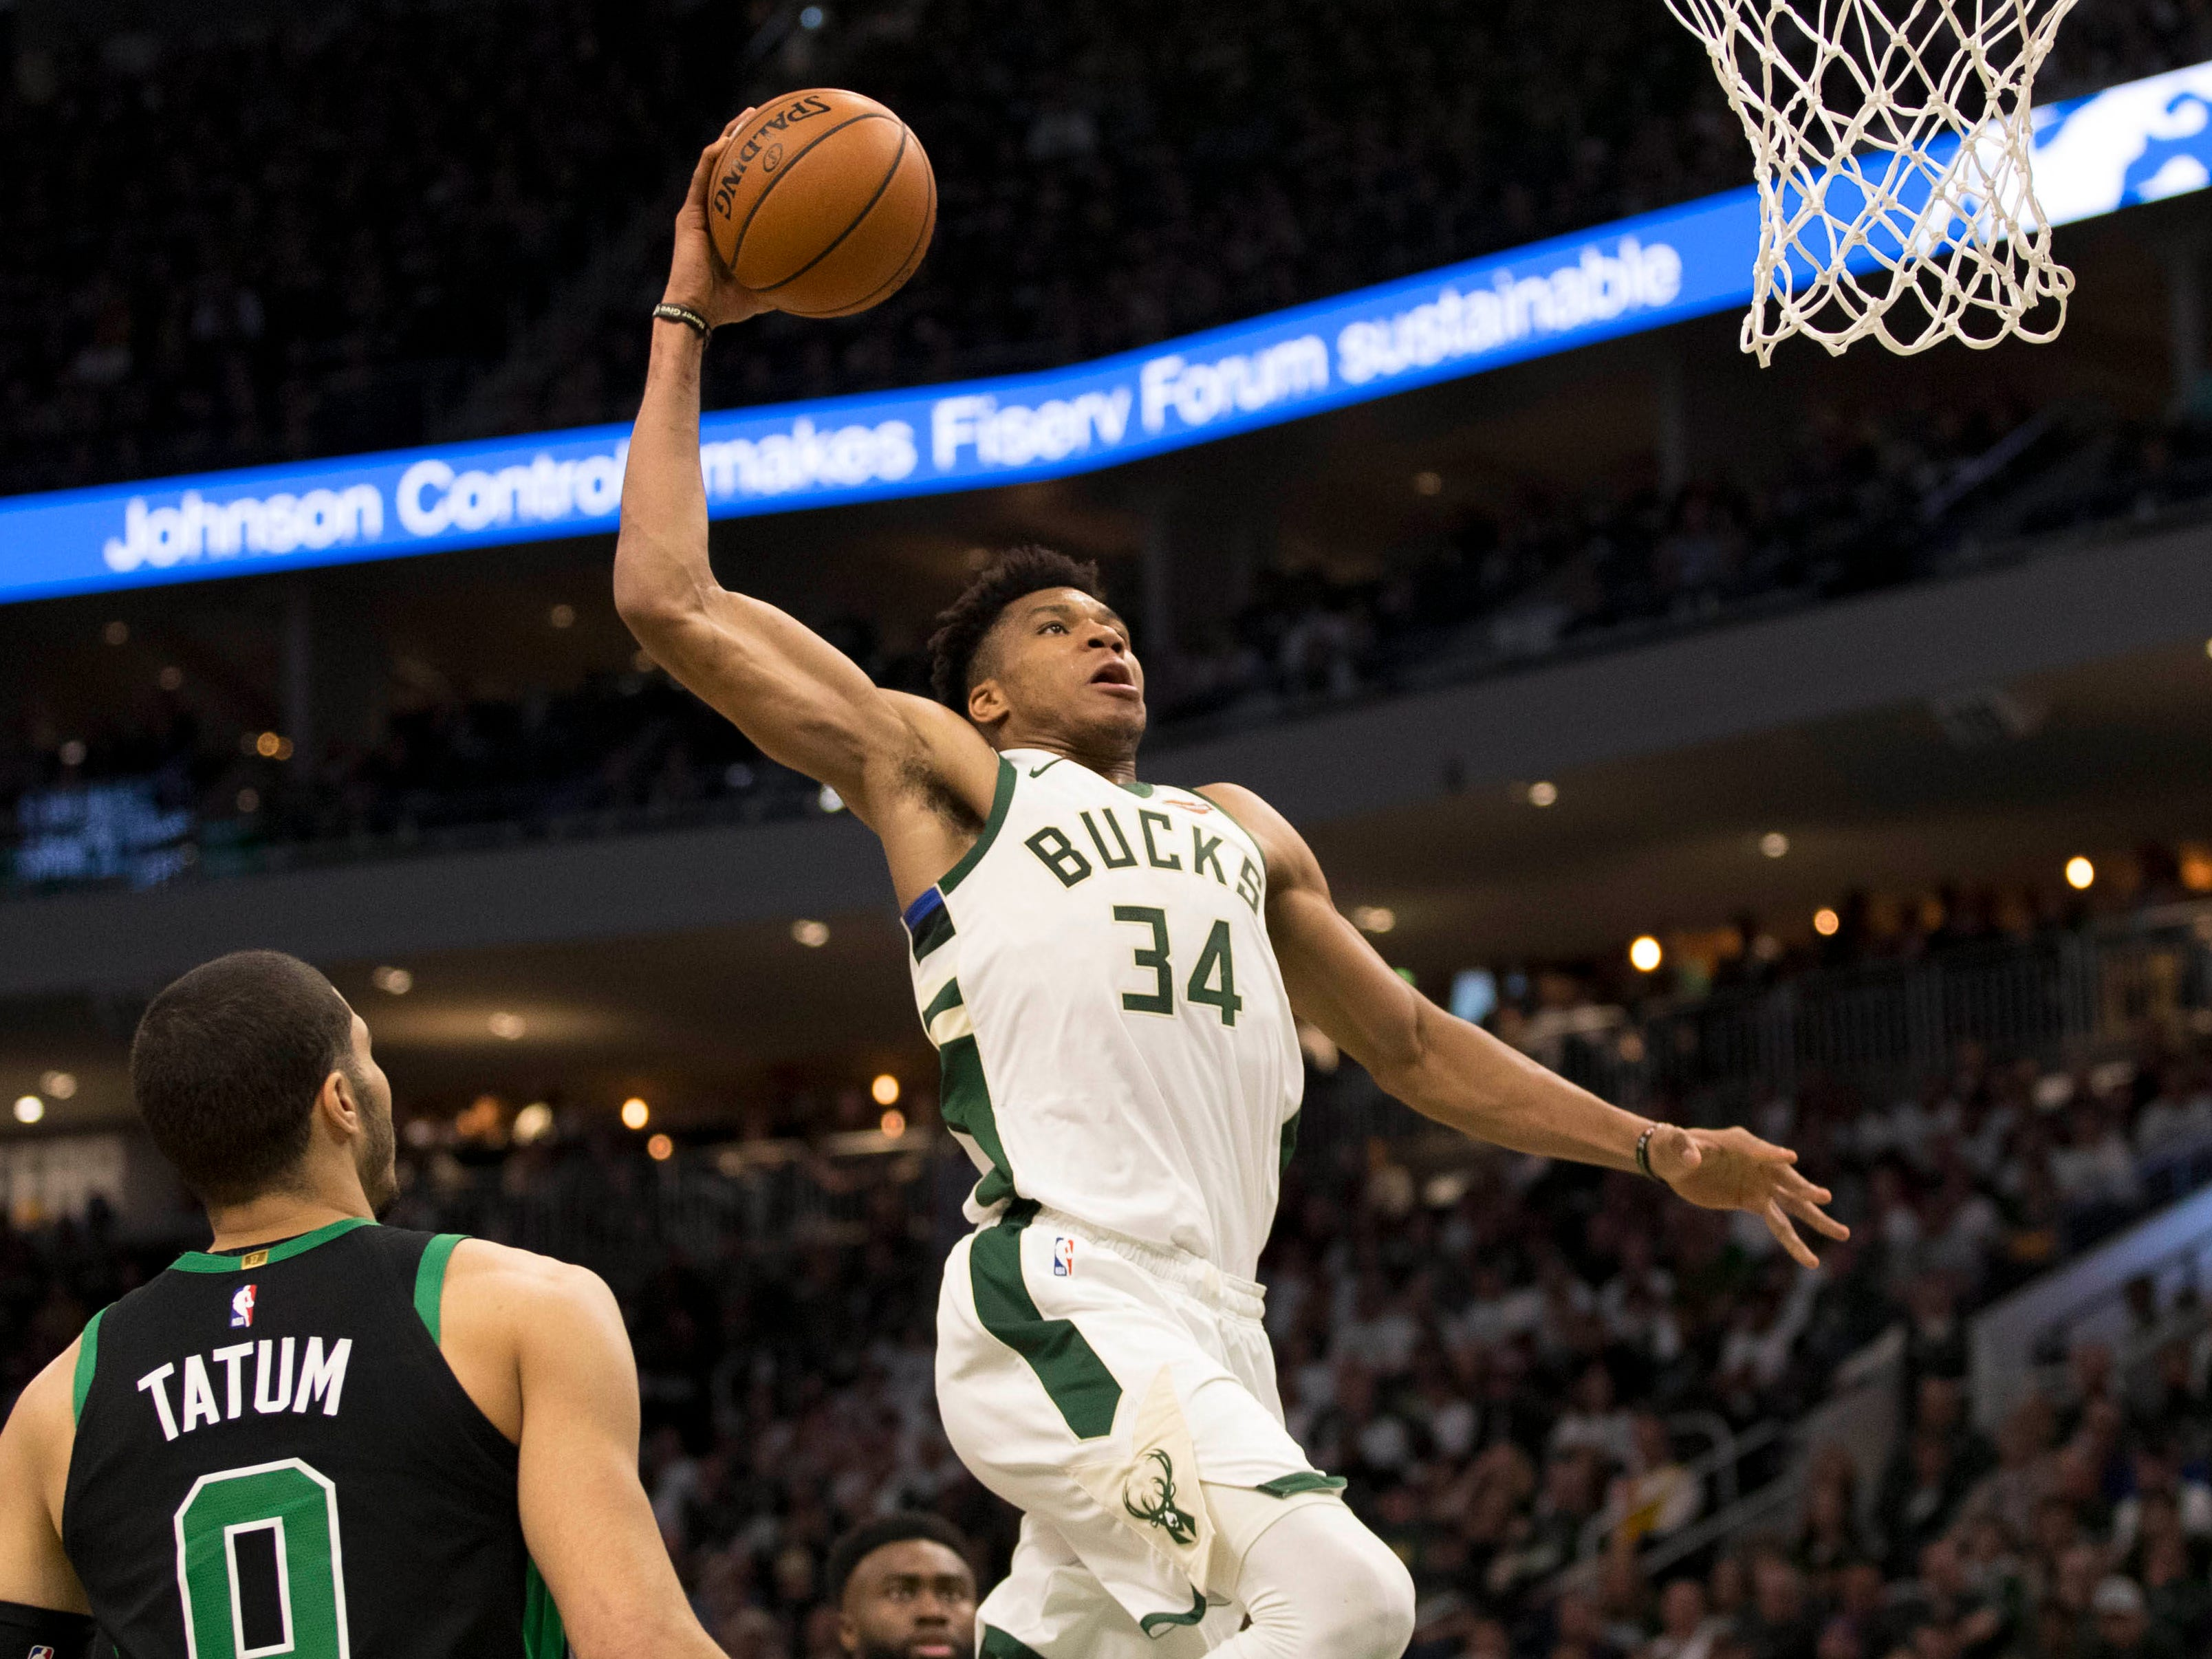 April 28: Bucks forward Giannis Antetokounmpo rises up for the one-handed slam during Game 1 against hte Celtics.